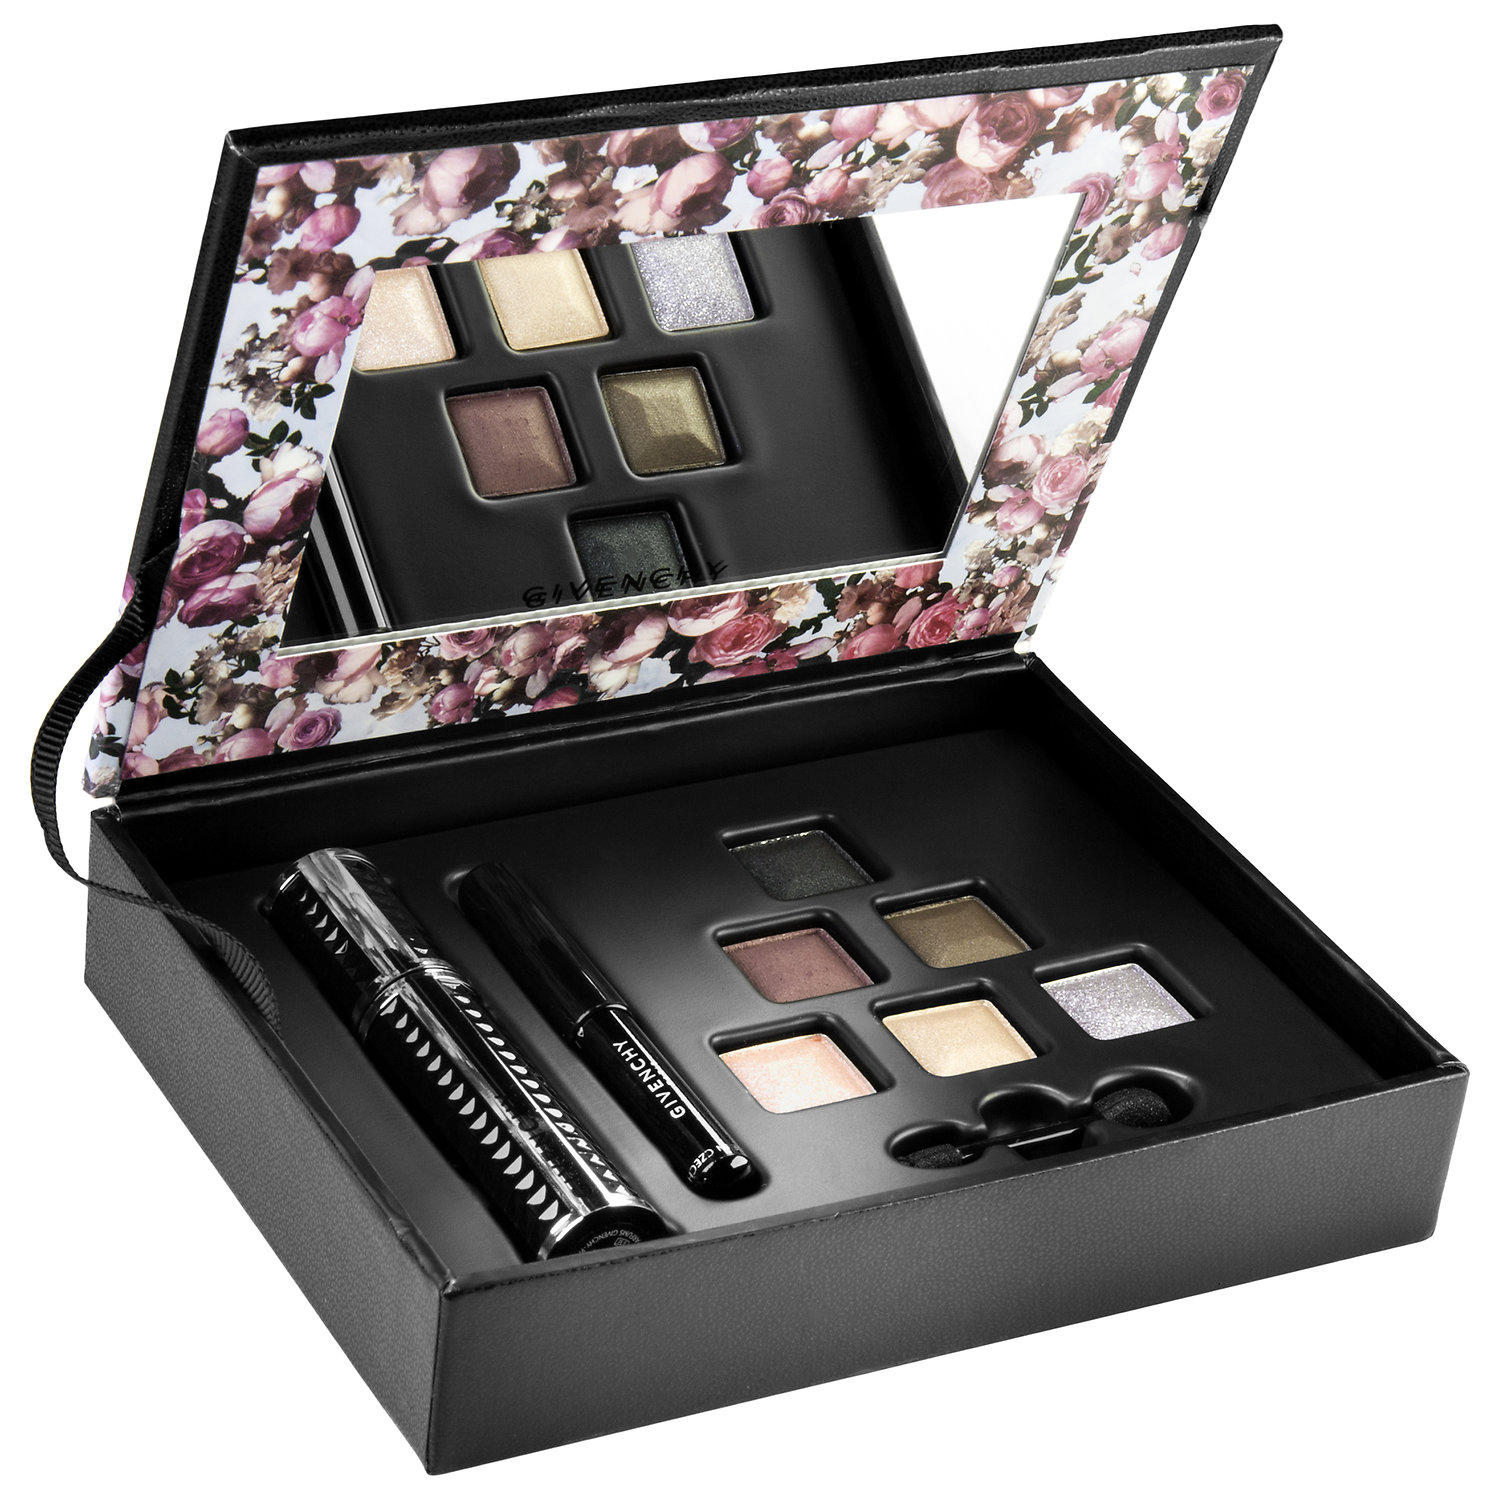 Givenchy launched The Essentials To Enhance Your Eyes Clutch Set